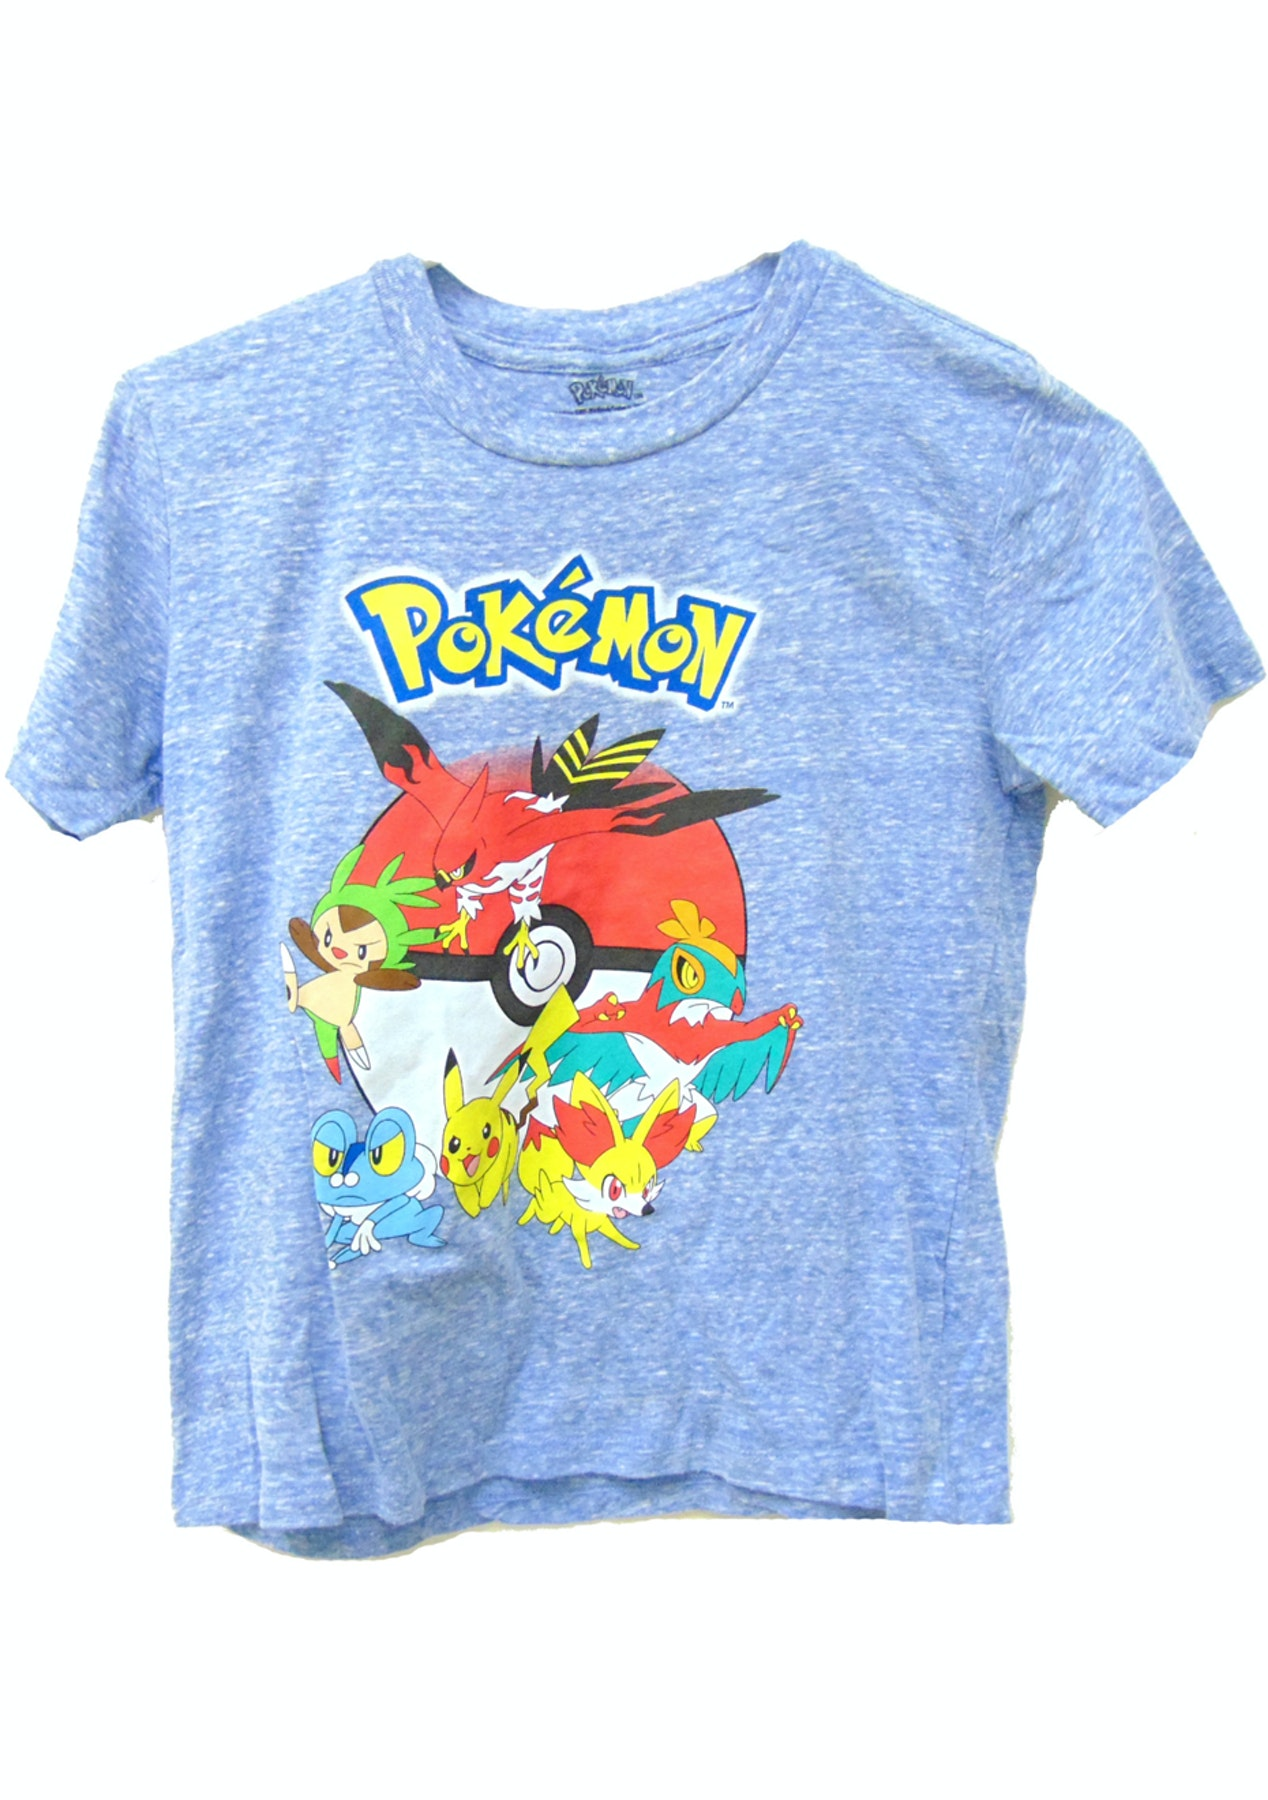 0ee70305b Pokemon Blue T Shirt Size 5/6 - The Kids Gift Sale - Onceit